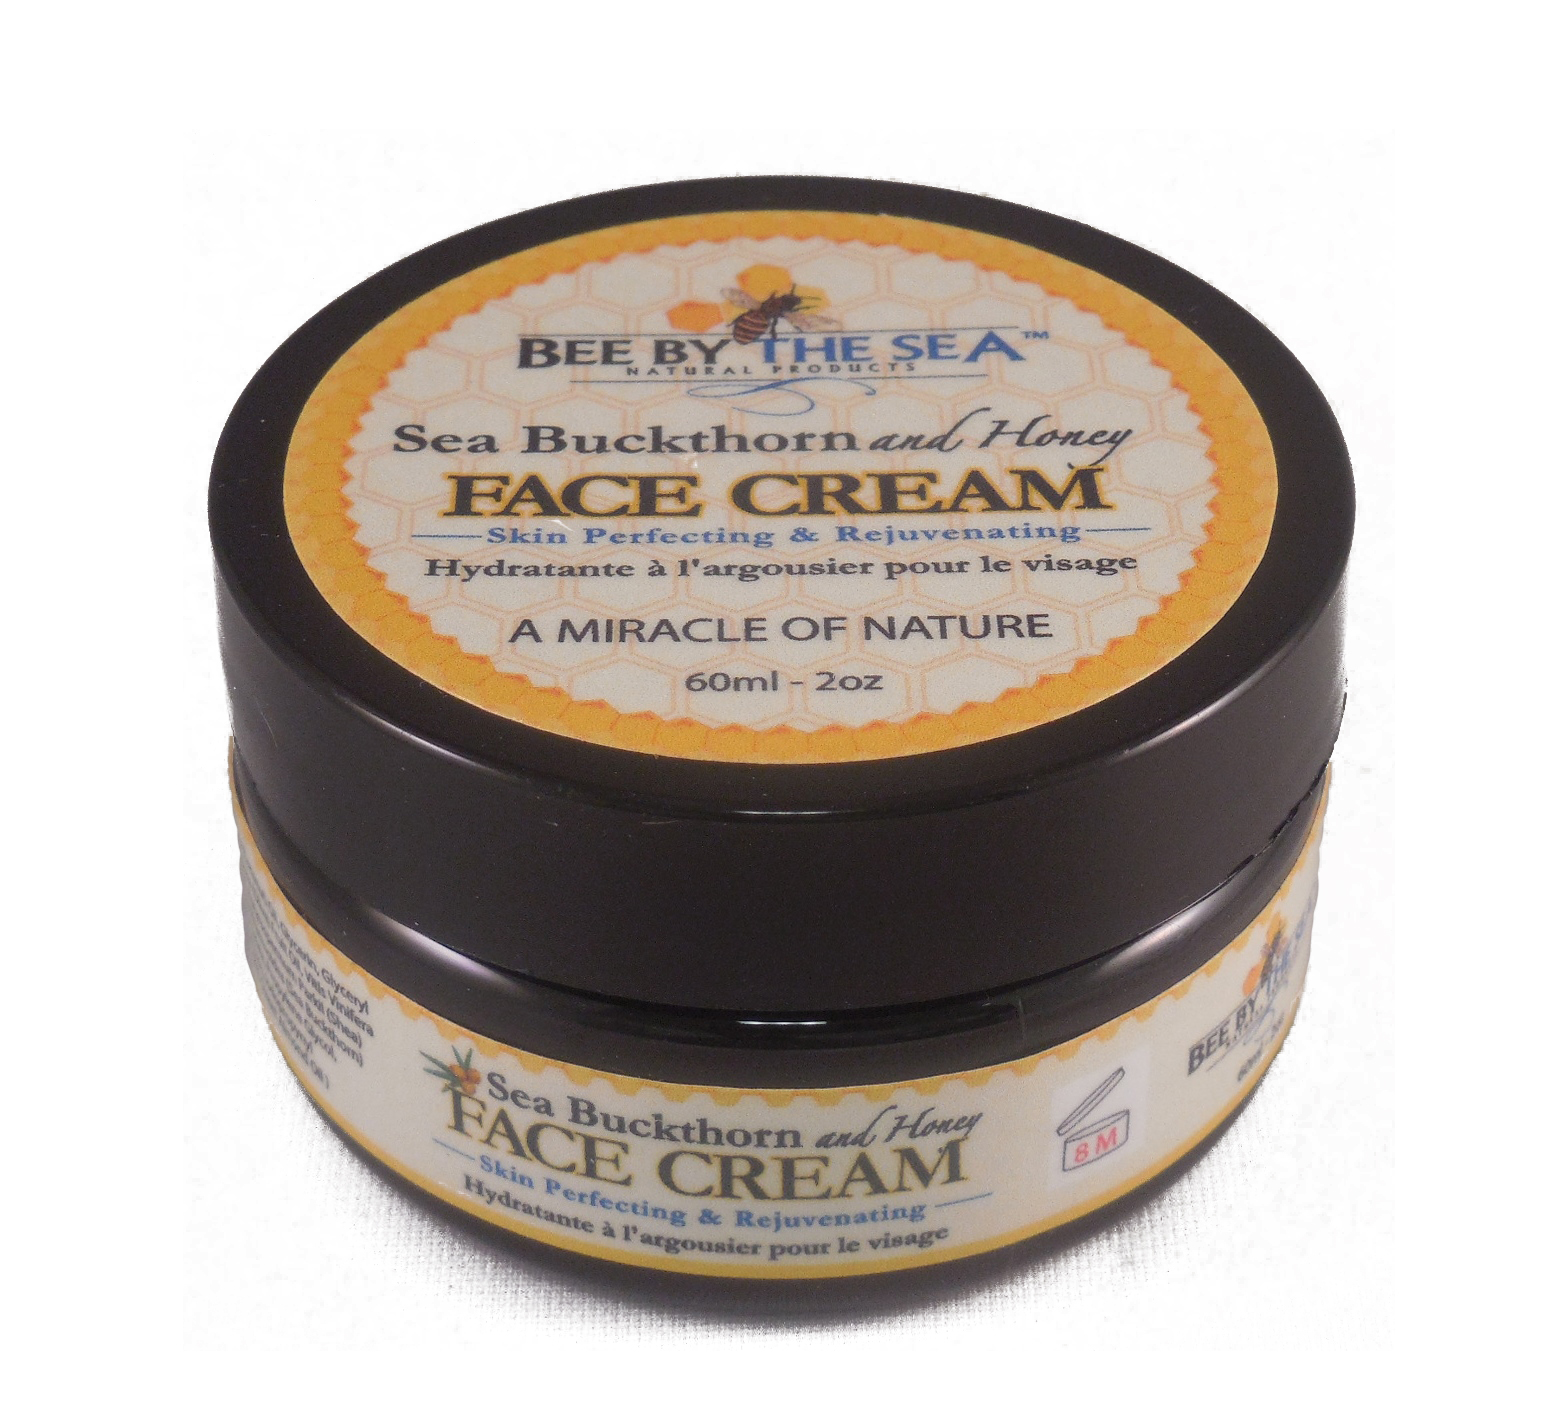 Bee By The Sea Face Cream Personal Care 2oz Borlind Of Germany Annemarie Borlind Natural Beauty Combination Skin Cleansing Gel - 5.07 Oz